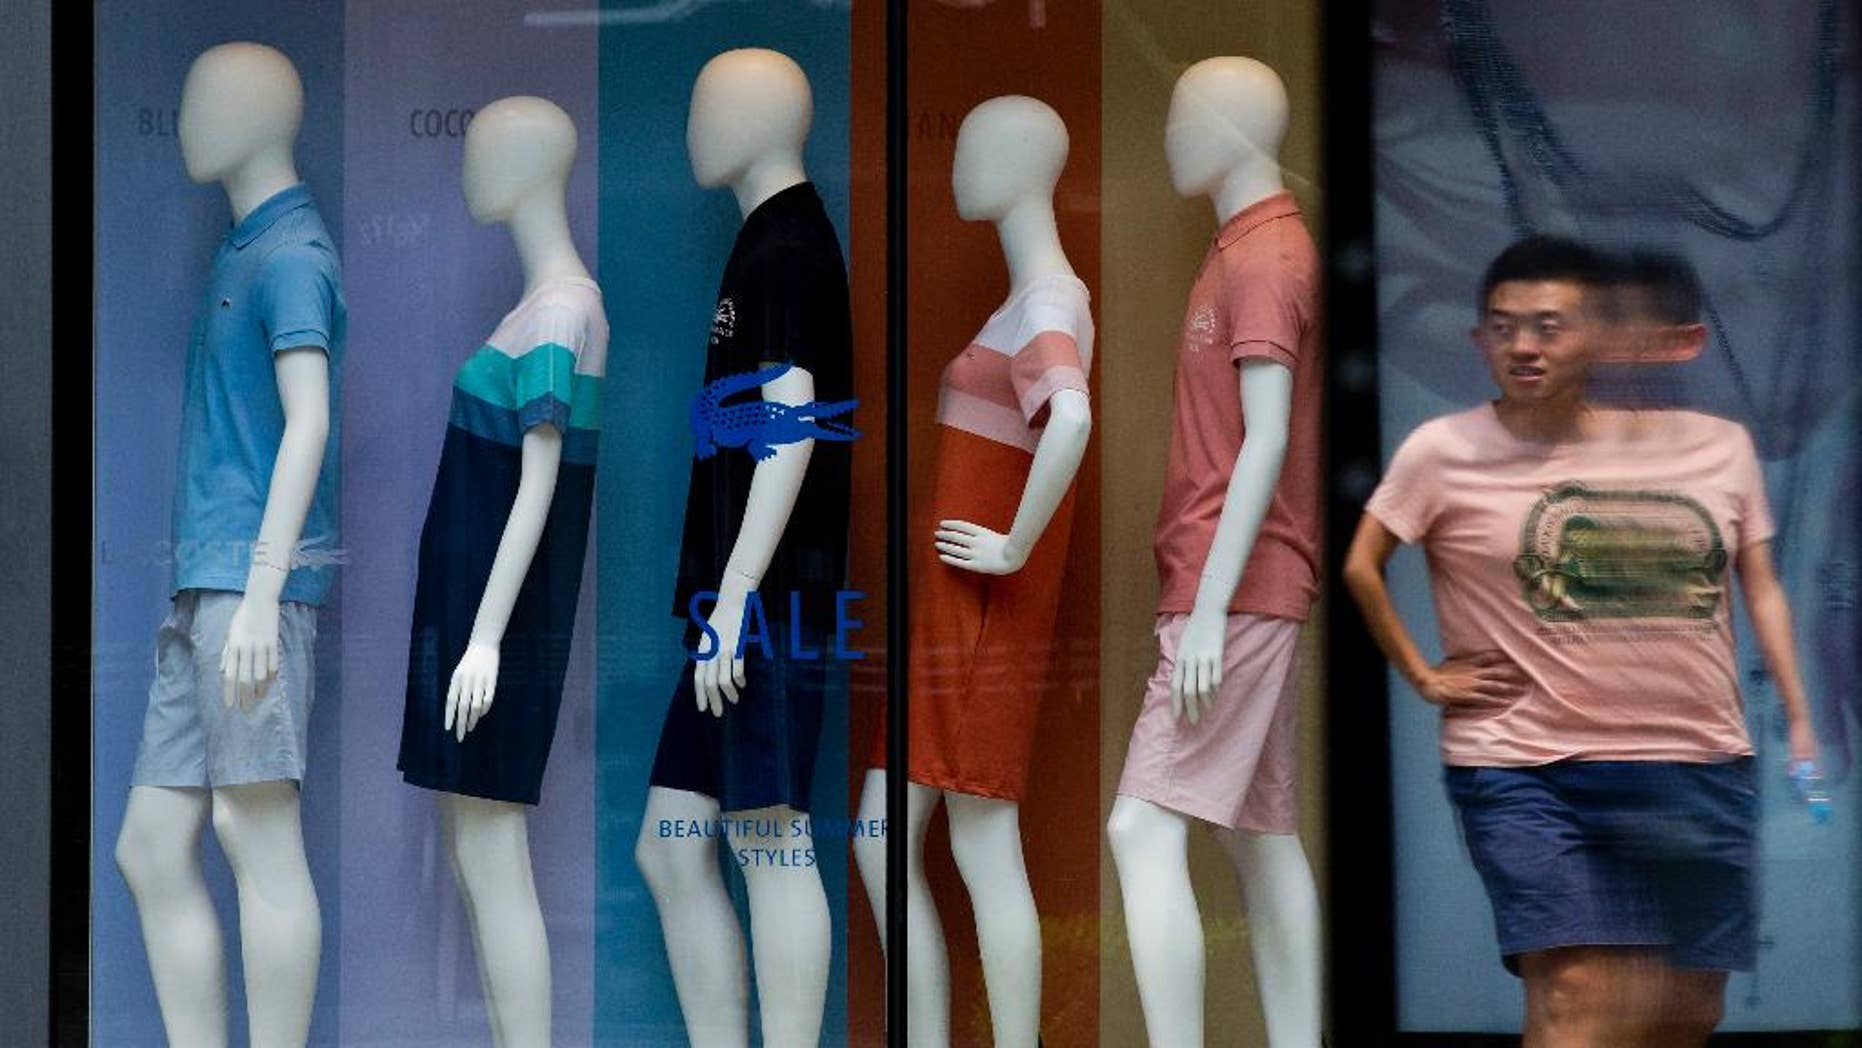 A man walks past mannequins with various fashion design clothes on display at a boutique in Beijing Tuesday, July 14, 2015. China's June export growth rebounded to 2.8 percent in a modest improvement amid slowing economic growth while imports fell 6.1 percent. (AP Photo/Andy Wong)